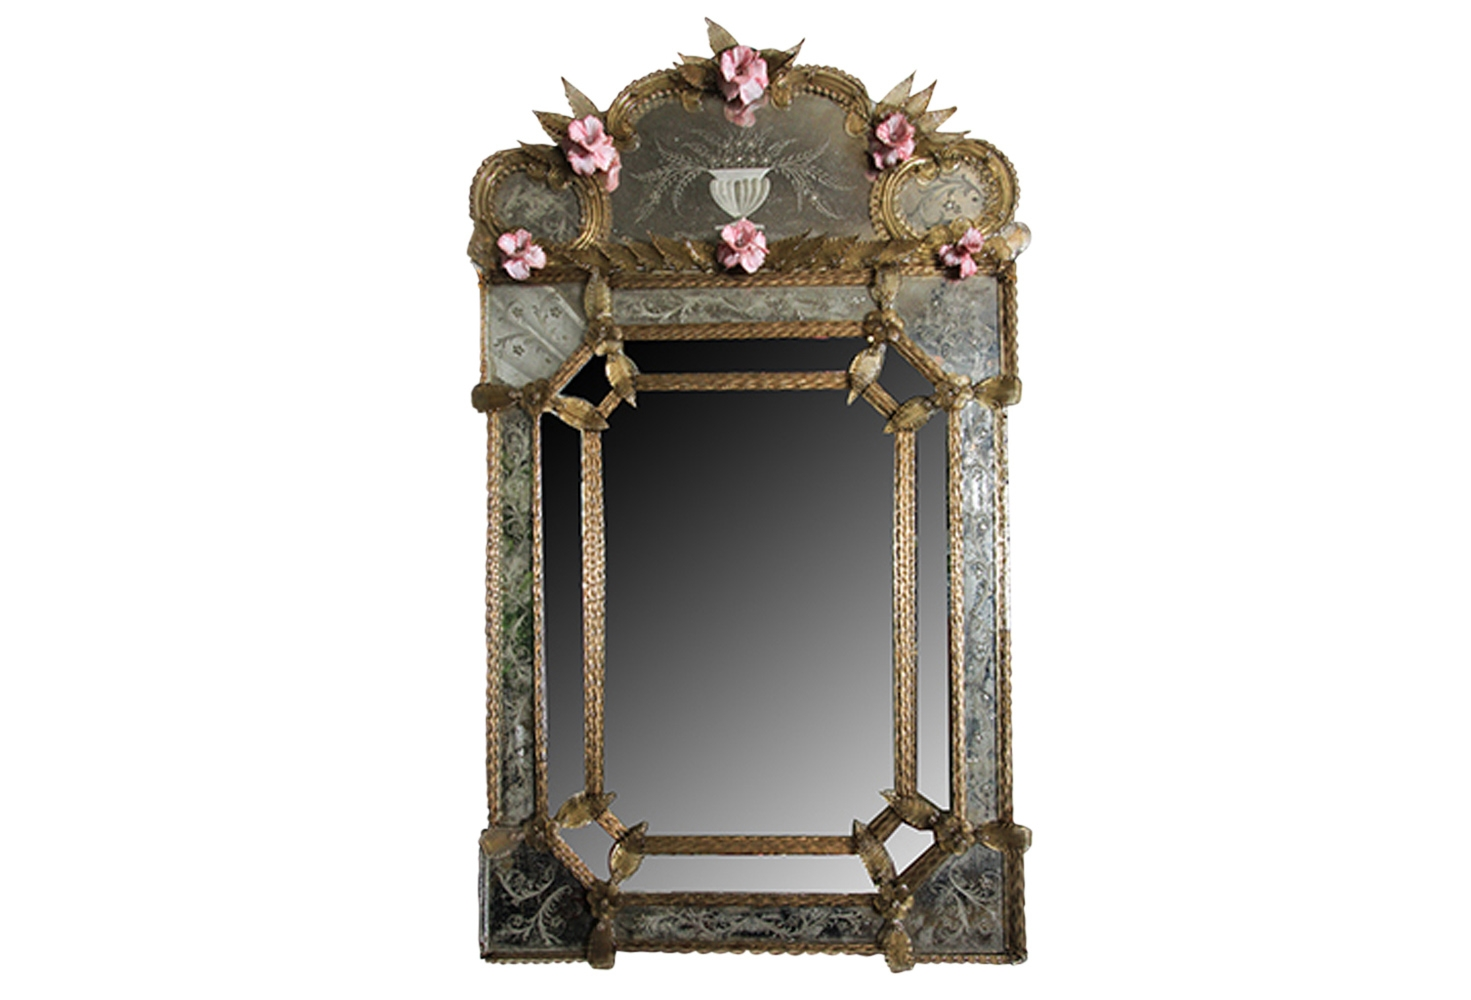 Antique Venetian Glass Mirror Inside Venetian Glass Mirrors Antique (Image 1 of 15)